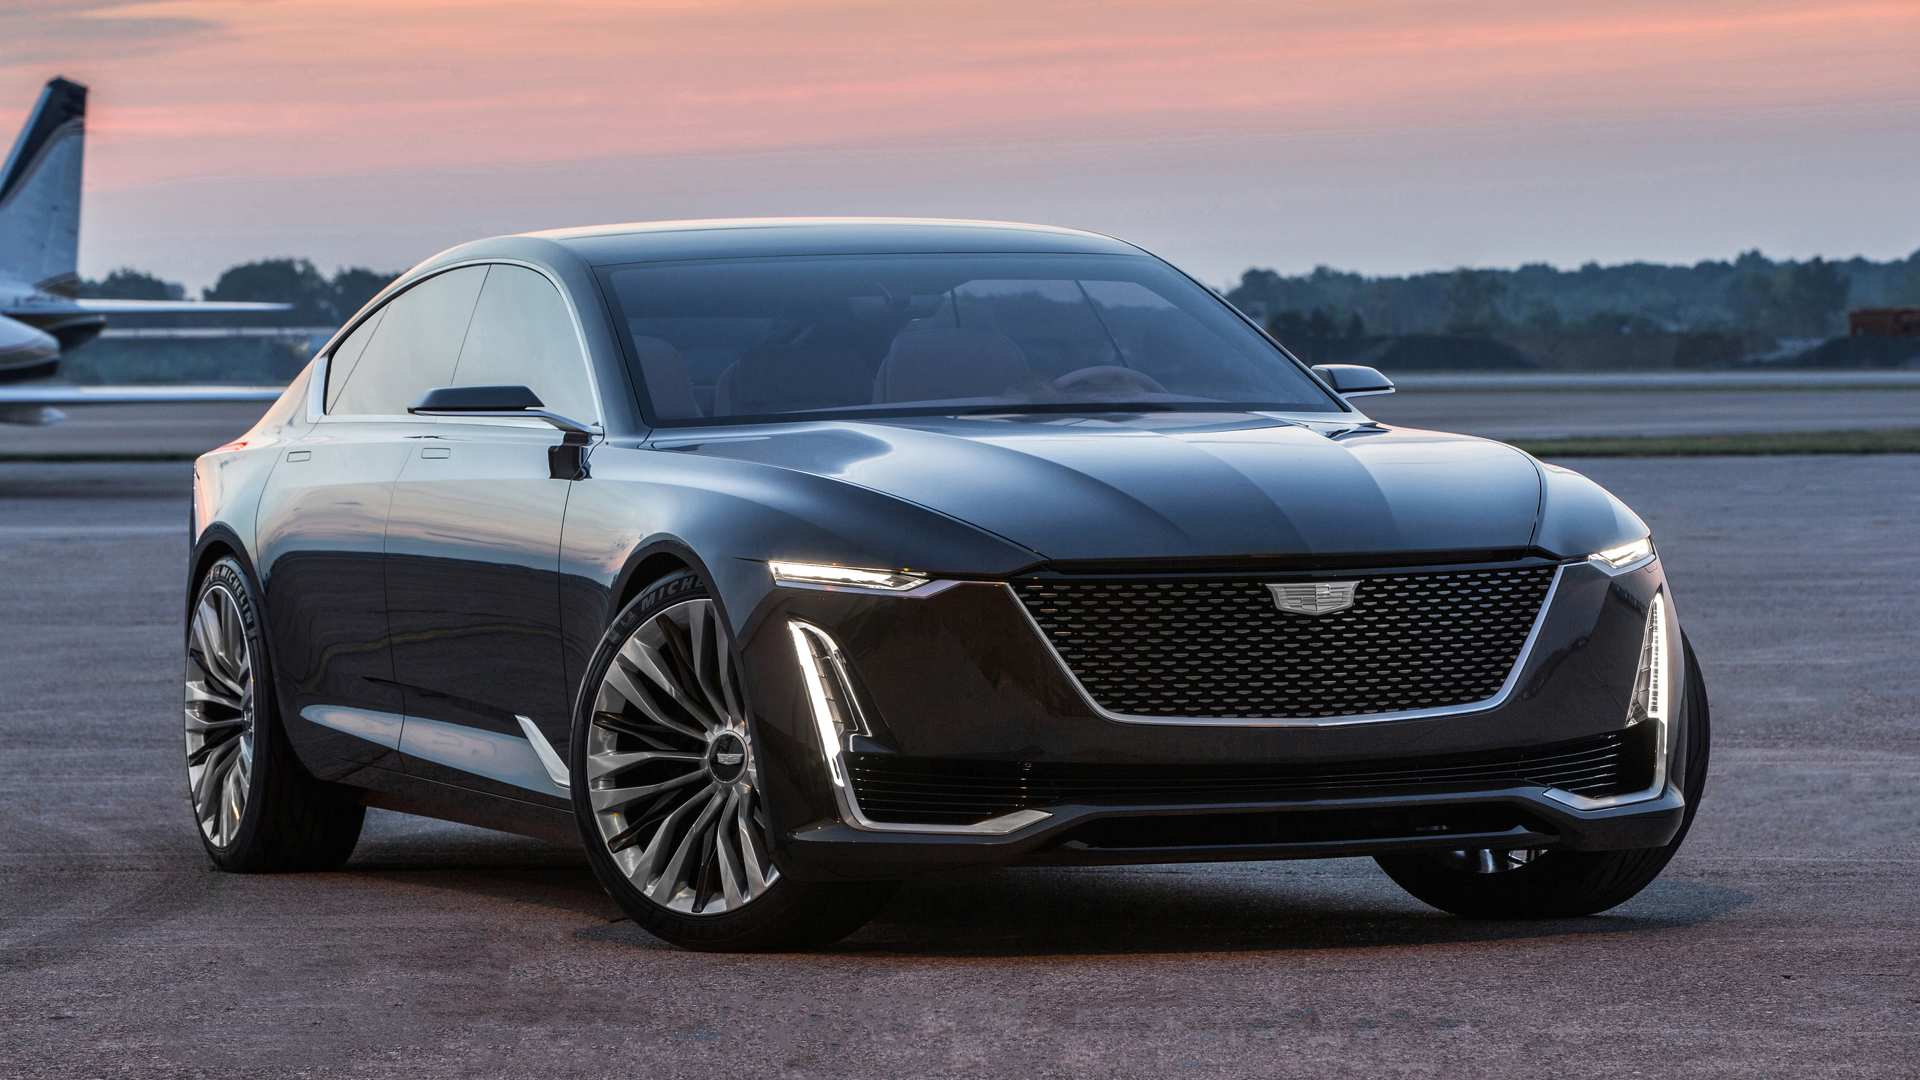 55 Best Review Cadillac Flagship 2020 Prices with Cadillac Flagship 2020